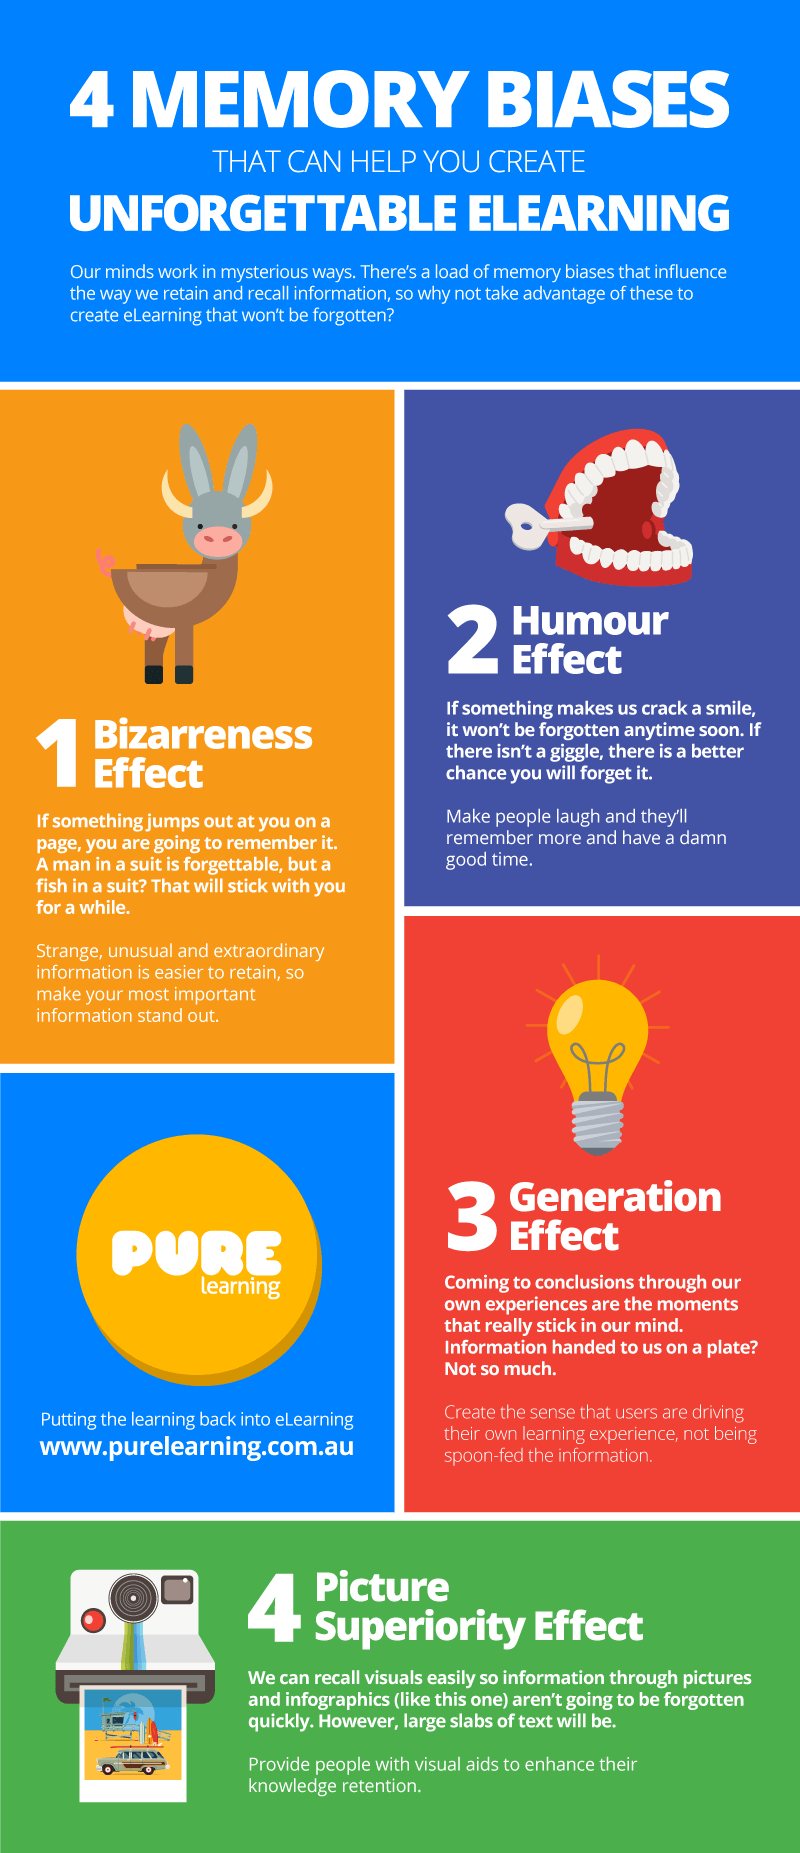 4 memory biases that can help you create Unforgetable elearning: 1. bazarreness effect, 2. Humour effect, 3. generation effect, 4. Picture superiority effect